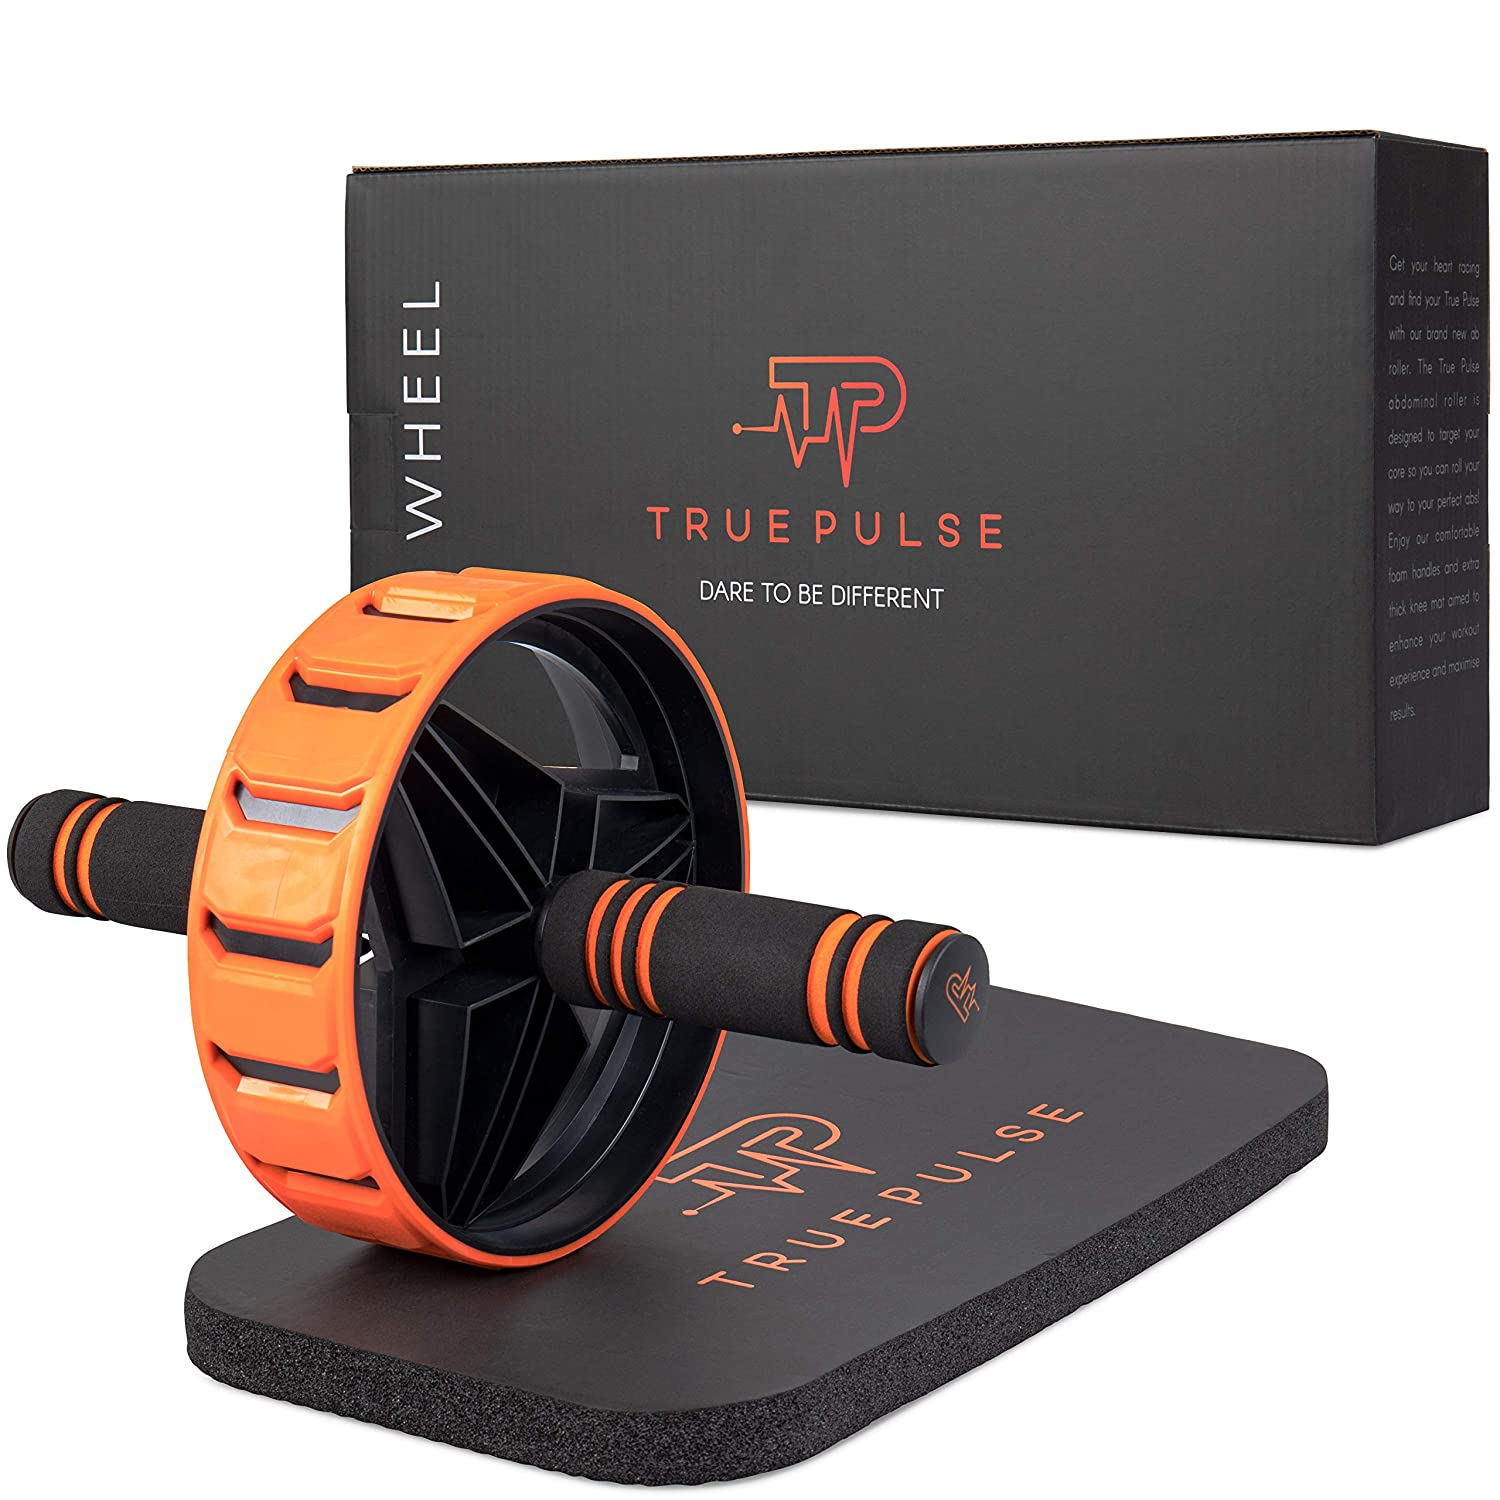 True Pulse Premium Ab Wheel – Fitness Equipment for Building CORE and arms – Wide Sturdy Non-Slip Rubber Wheel, Extra Thick Knee pad, and Comfortable Foam Handles